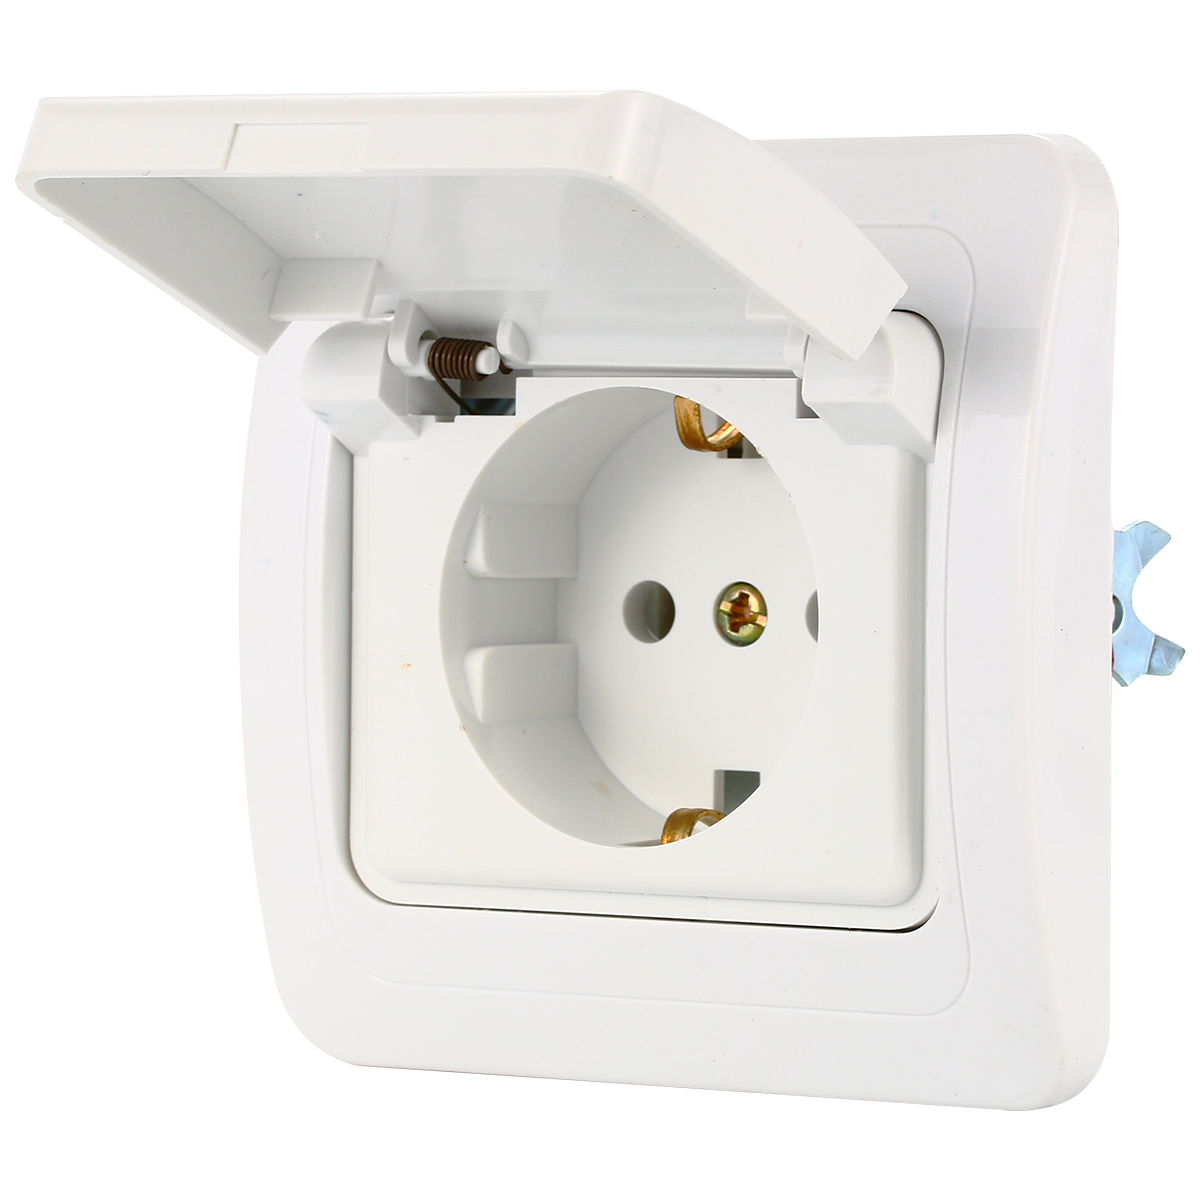 Korea plug wiring outlets electrical work wiring diagram 16a 250v korea wiring receptacle power outlet schuko germany rh aliexpress com wiring electric plugs in line outlet plug wiring diagram cheapraybanclubmaster Gallery